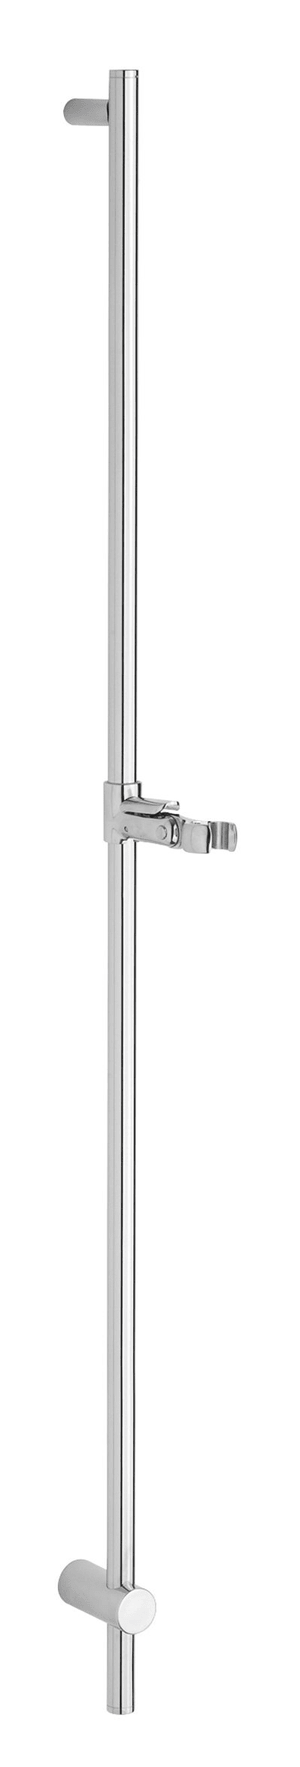 Bar de douche Techno 110cm Swiss Edition